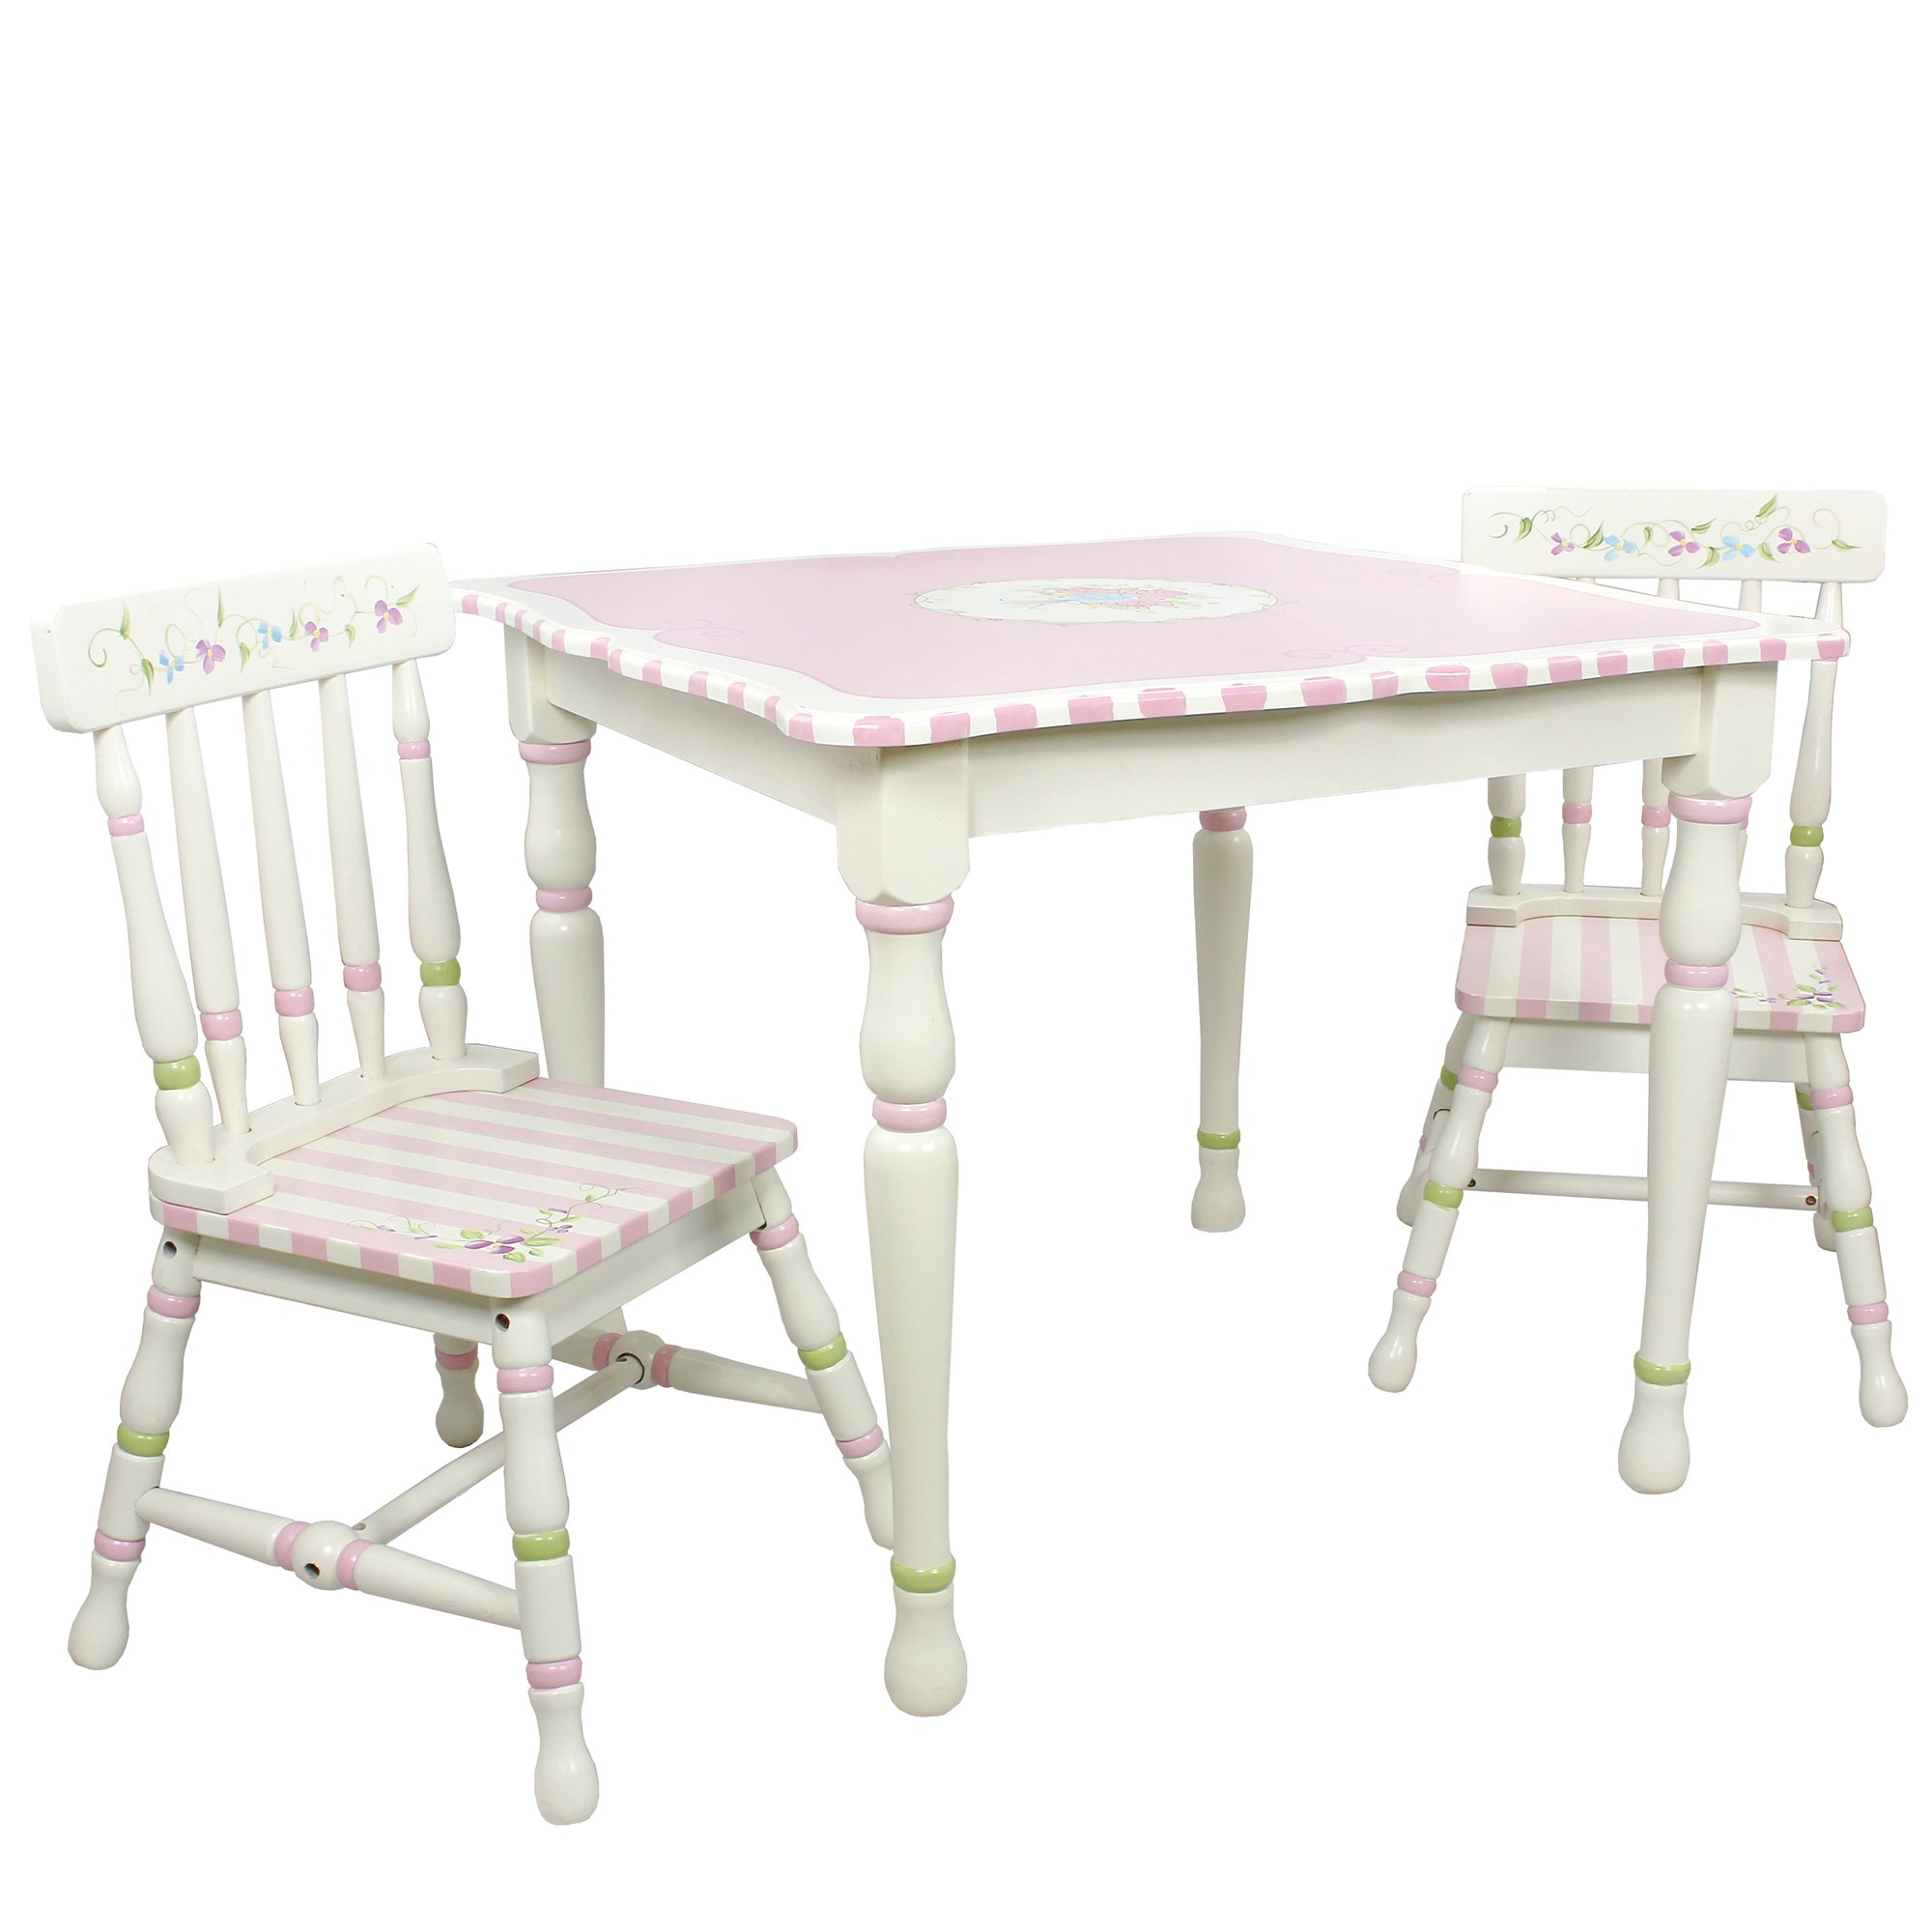 Fantasy Fields - Bouquet Thematic Hand Crafted Kids Wooden Table and 2 Chairs Set |Imagination Inspiring Hand Crafted & Hand Painted Details   Non-Toxic, Lead Free Water-based Paint by Fantasy Fields